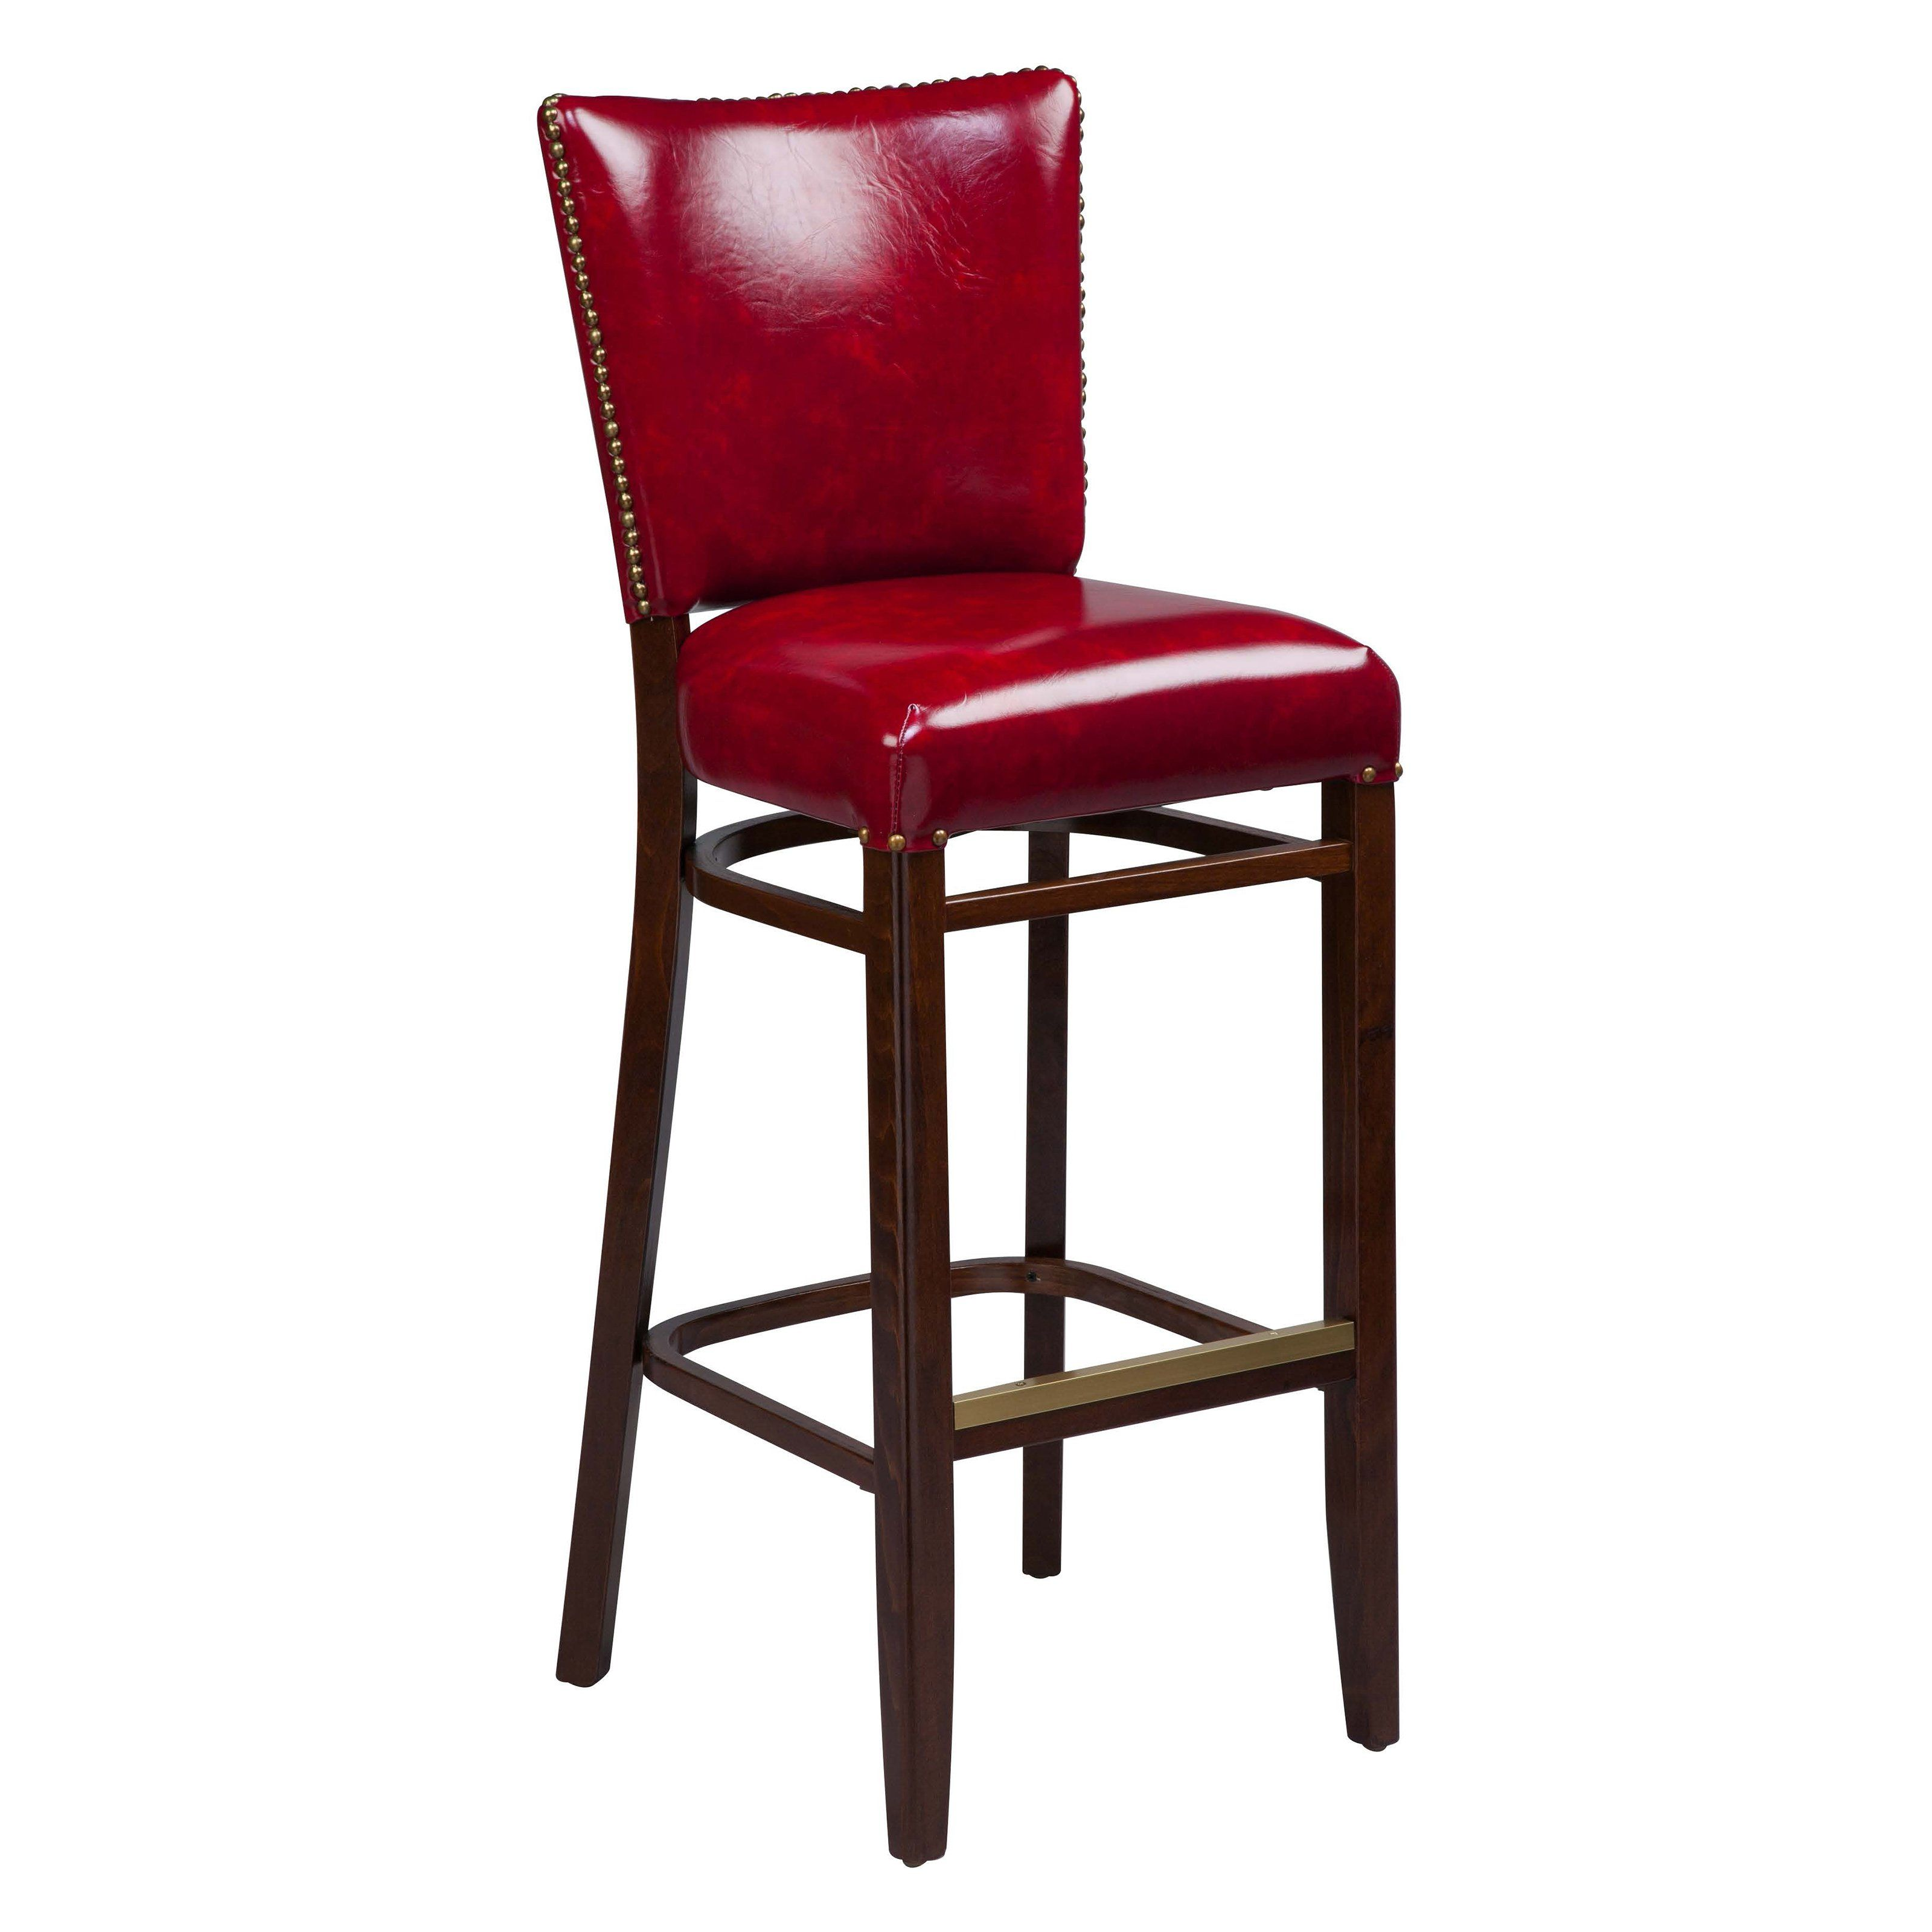 Regal Beechwood 2440 Bar Stool Upholstered Seat and Back